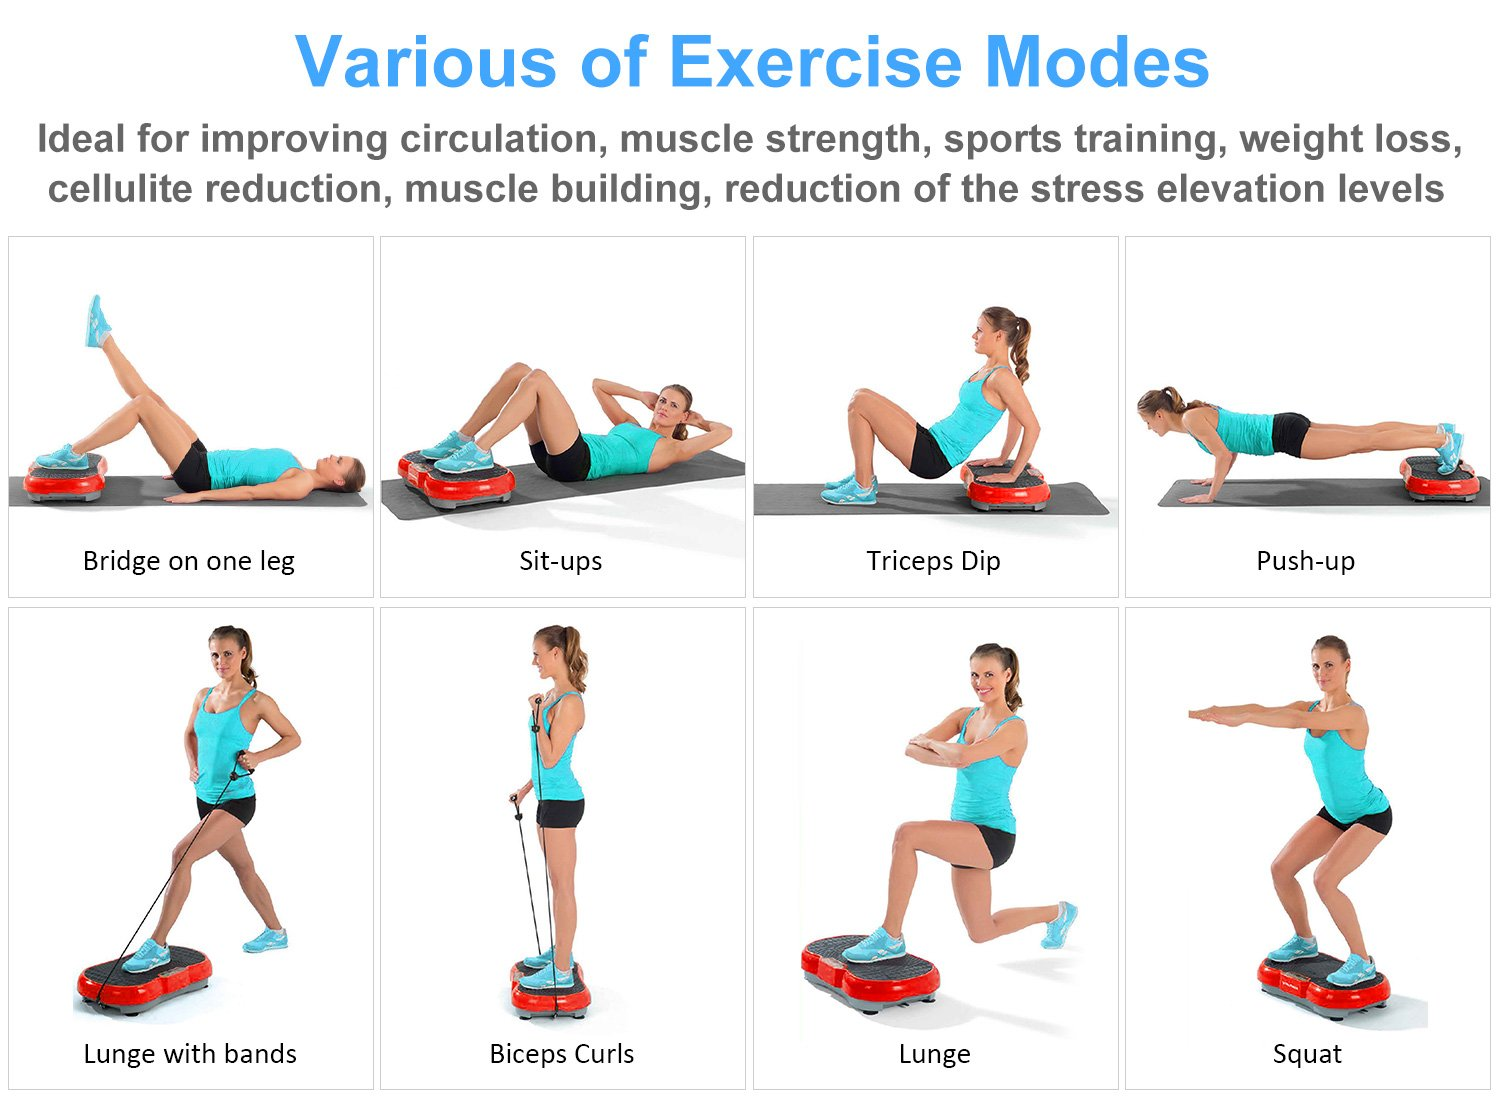 iDeer Vibration Platform Fitness Vibration Plates,Whole Body Vibration Exercise Machine w/Remote Control &Bands,Anti-Slip Fit Massage Workout Vibration Trainer Max User Weight 330lbs (Red09003) by IDEER LIFE (Image #6)